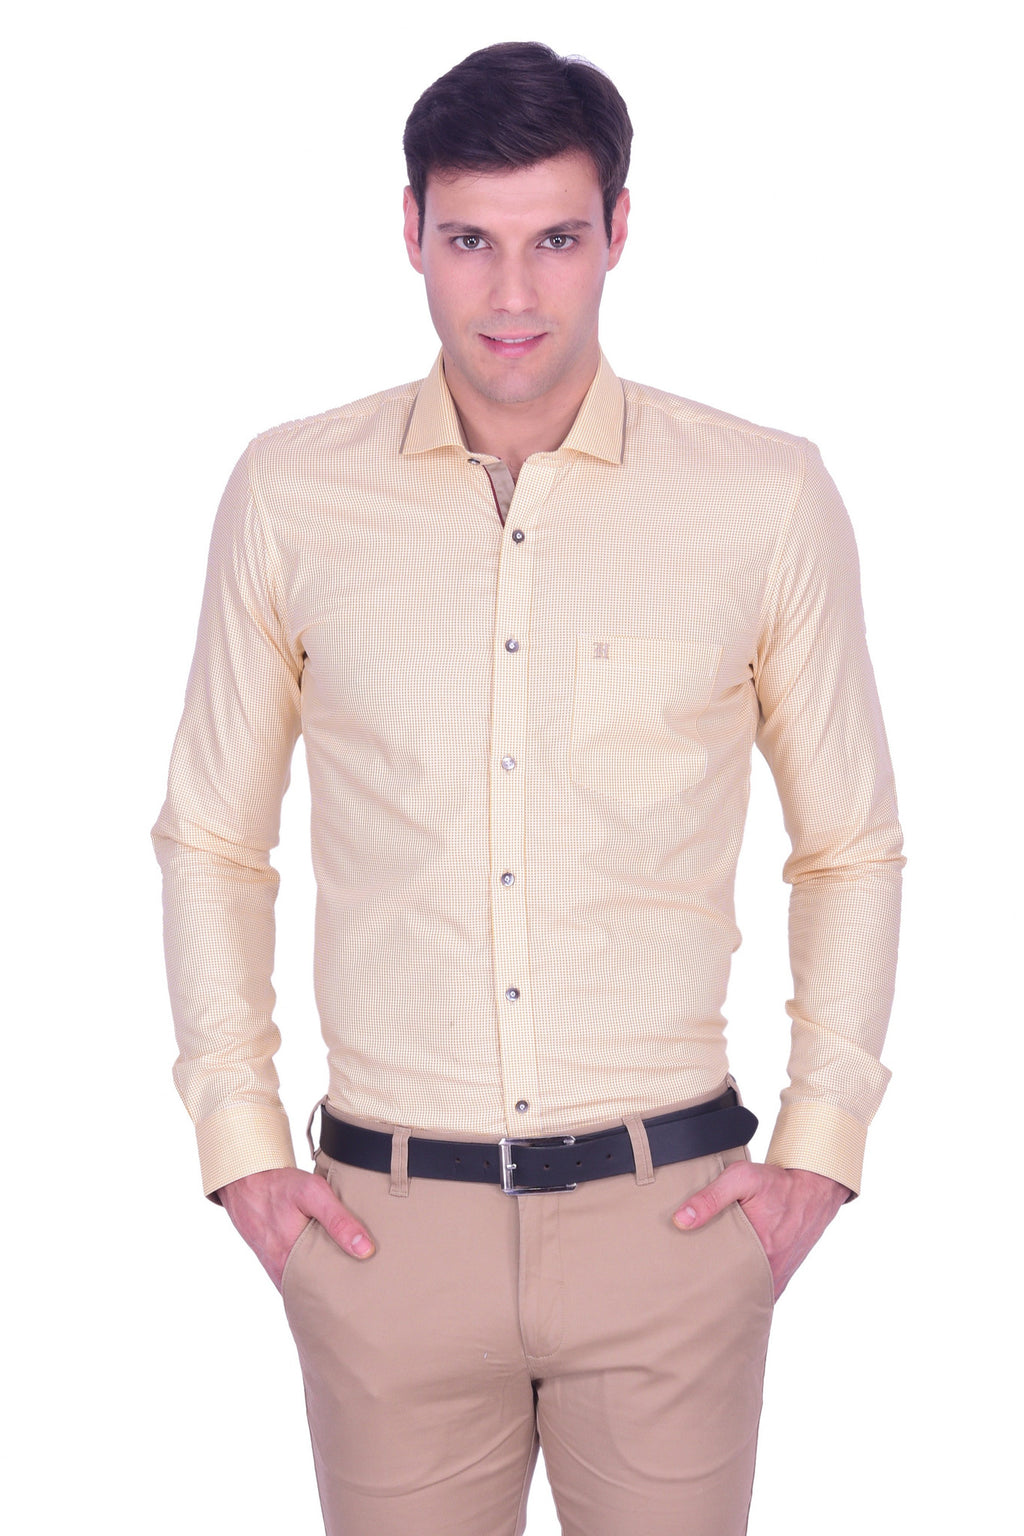 Hoffmen Men's Party Shirt PD3086